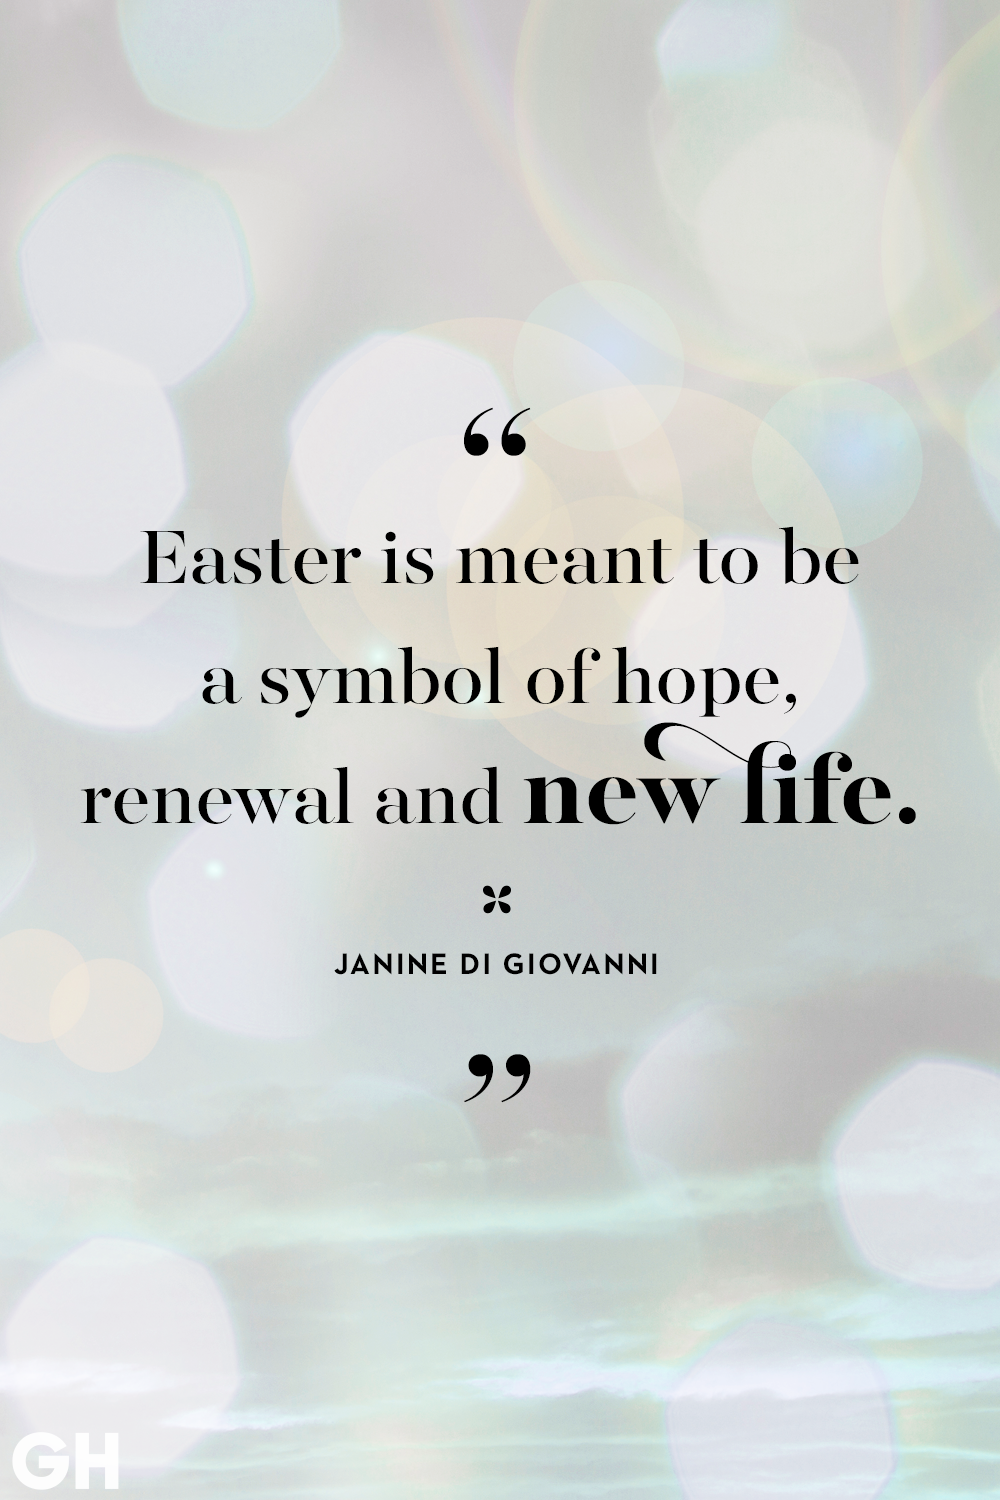 Easter Phrases And Quotes 35 Best Easter Quotes Famous Sayings About Hope And Spring Dogtrainingobedienceschool Com